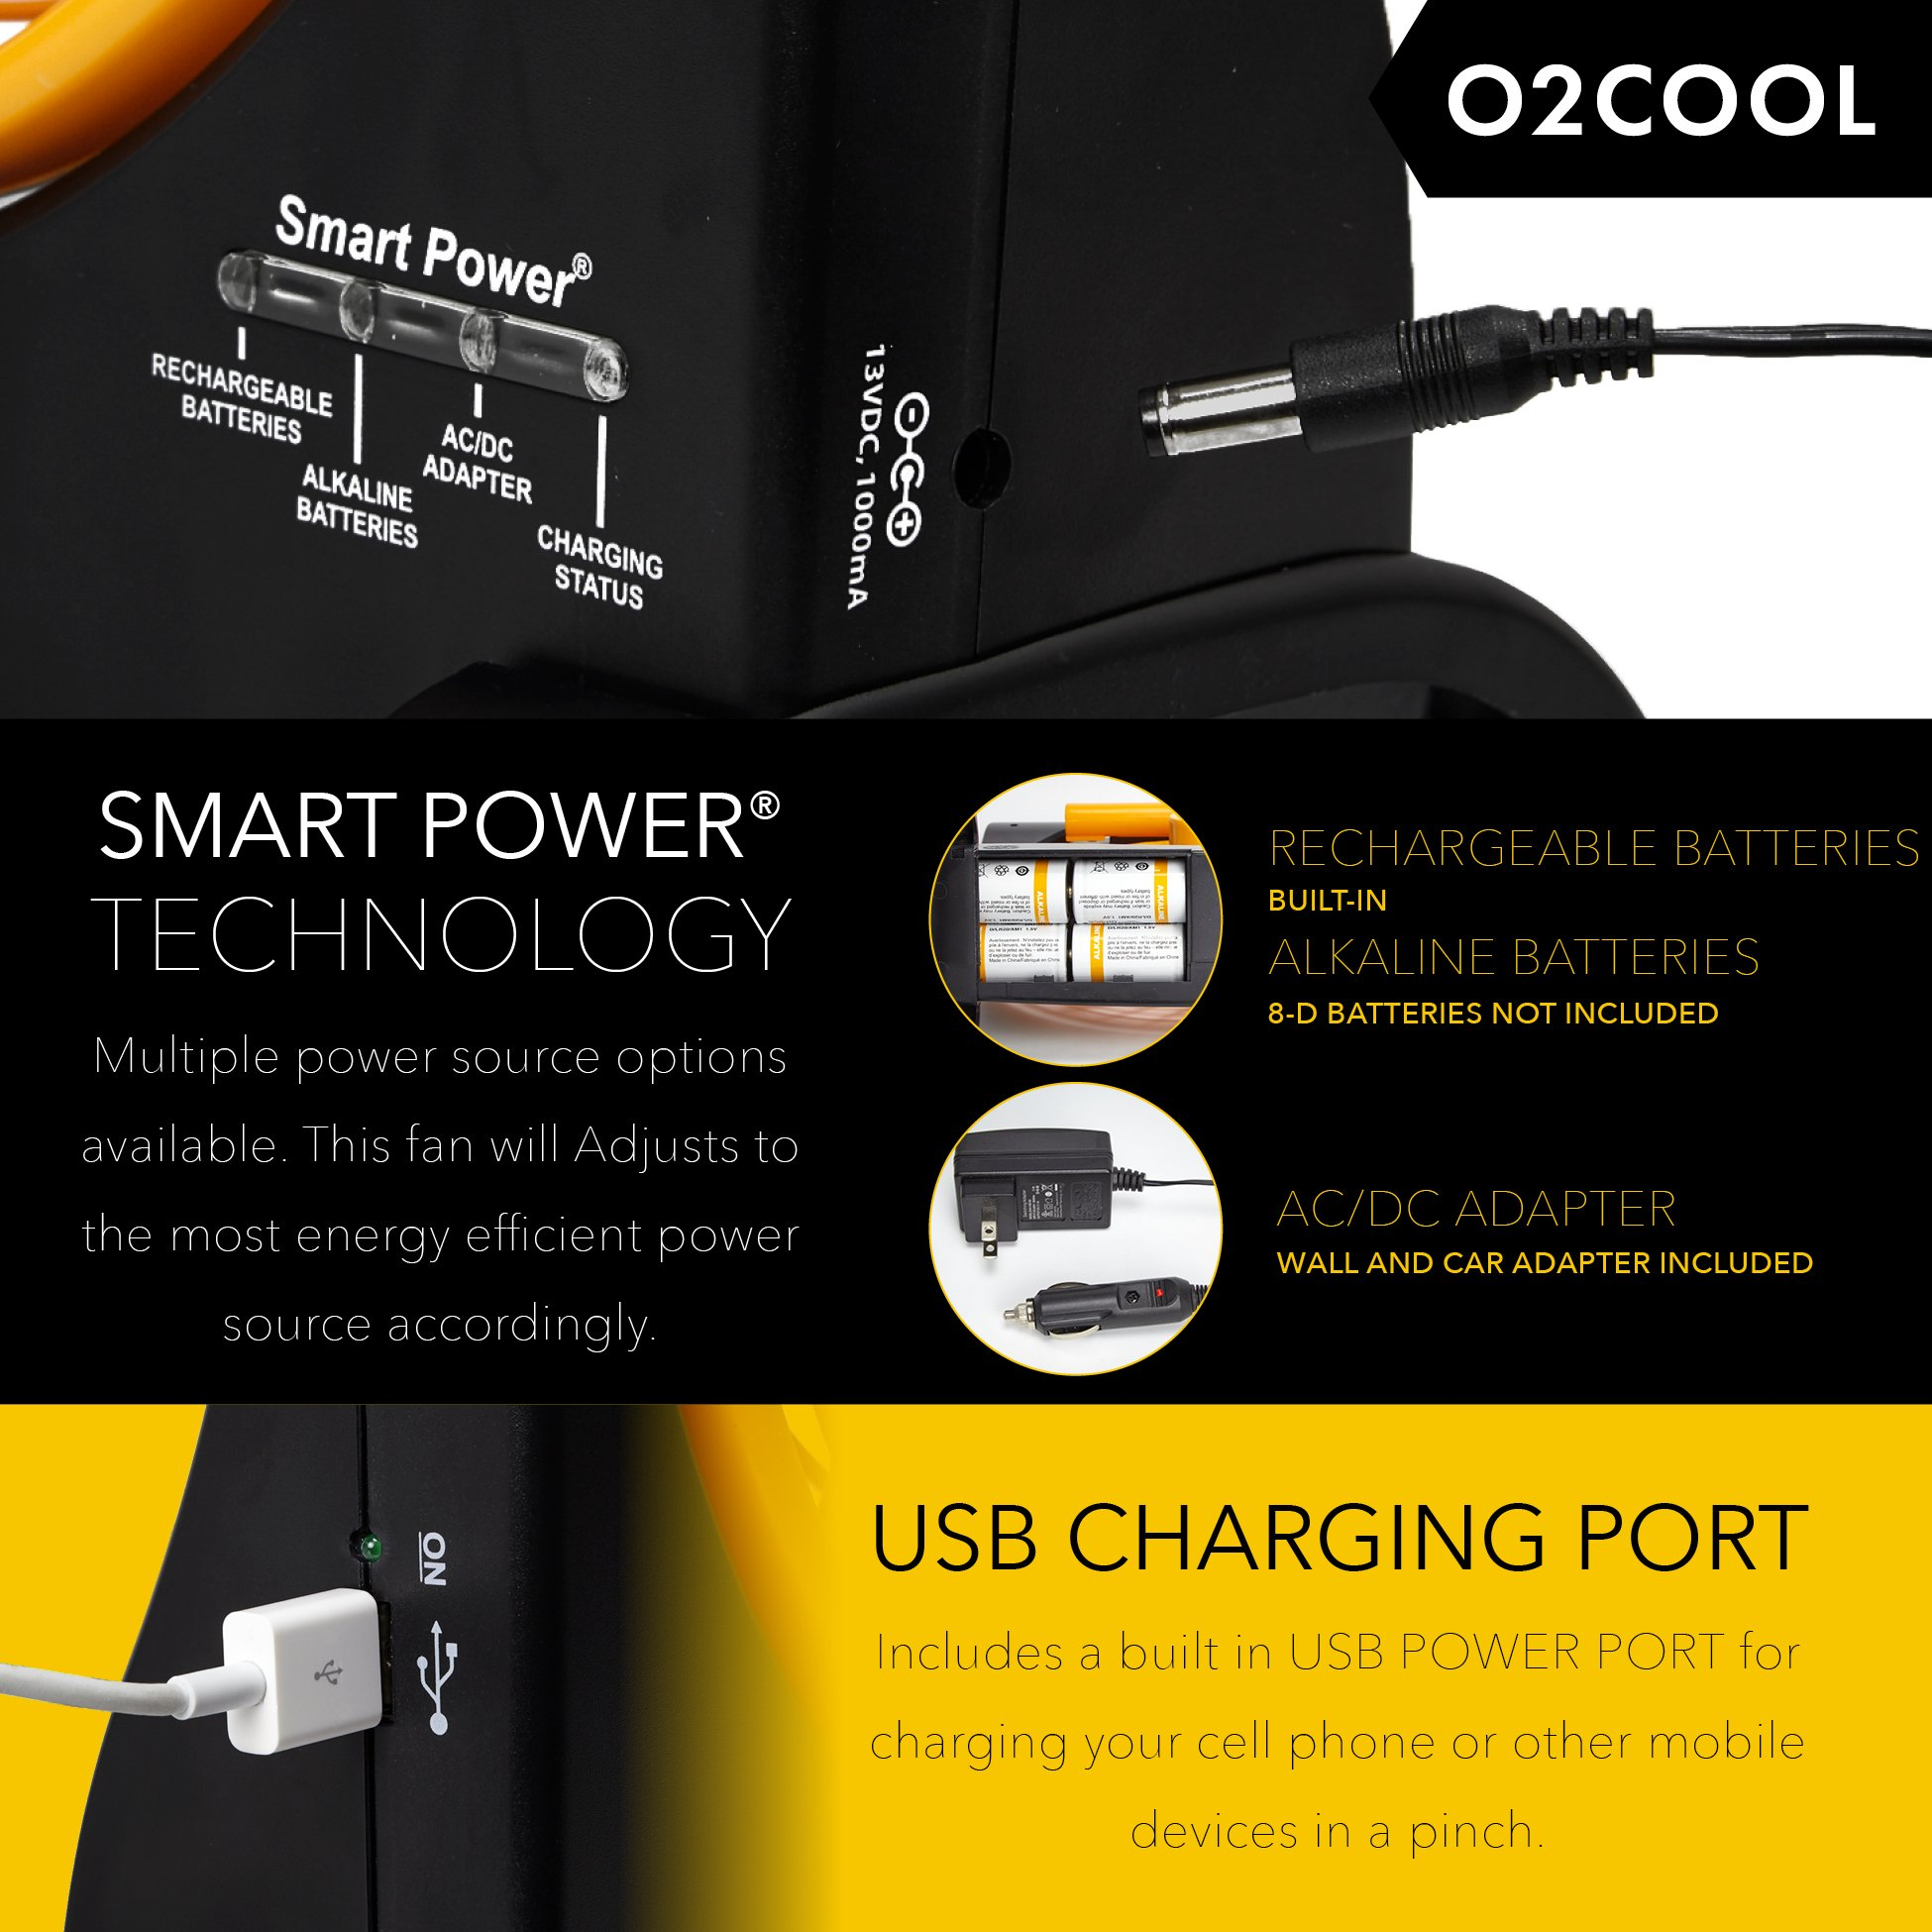 """O2COOL 10"""" Battery Operated Fan - Portable Smart Power Fan with AC Adapter & USB Charging Port for Emergencies, Camping & Travel Use (Orange) by O2COOL (Image #3)"""